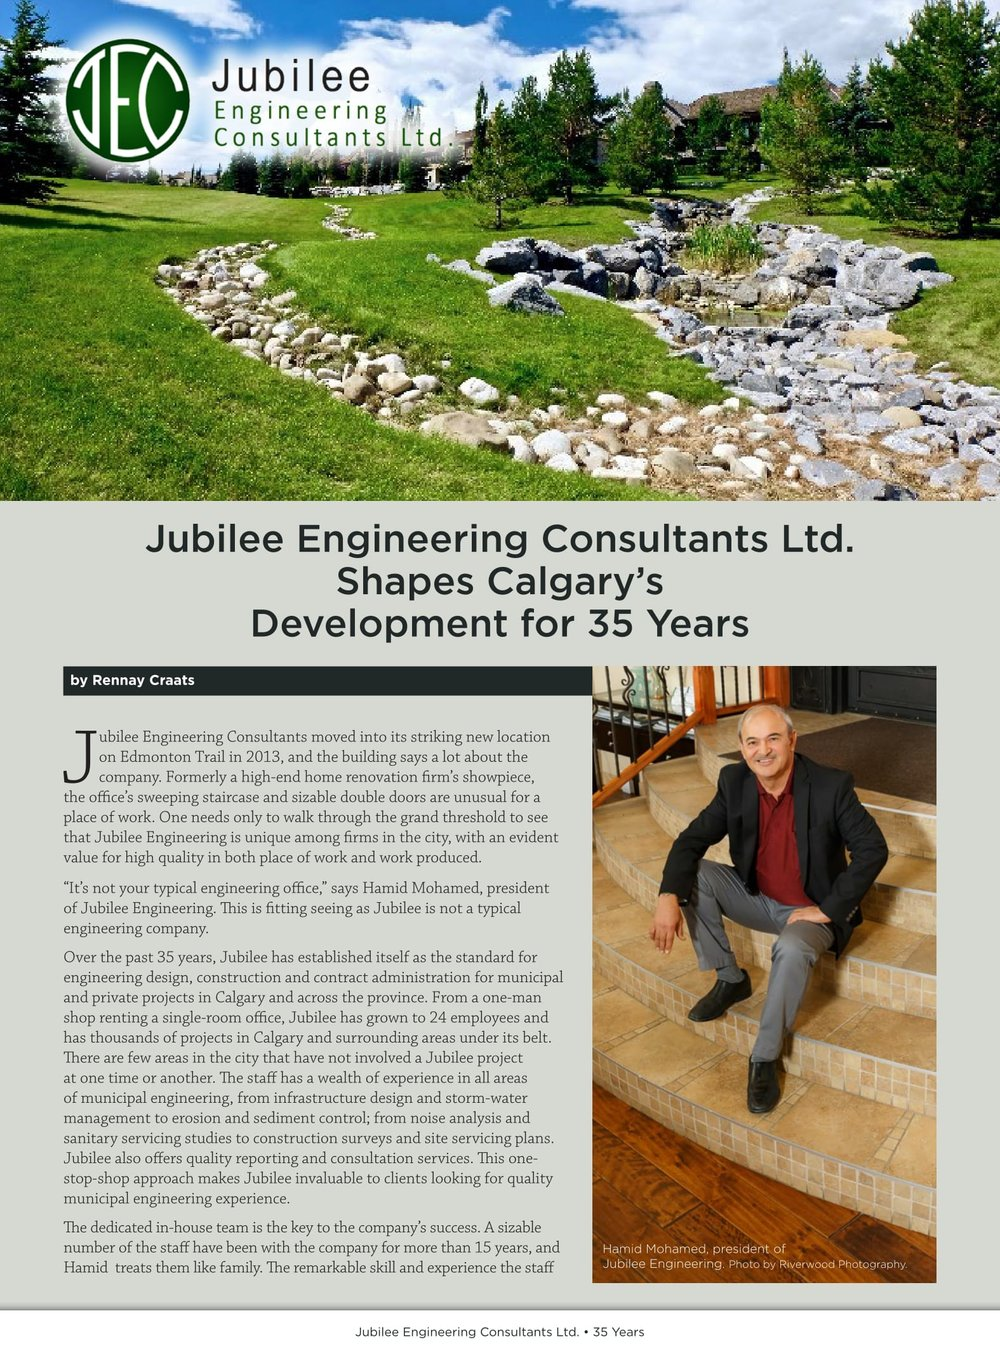 Jubilee_ProfileLayout_Dec2018-1.jpg